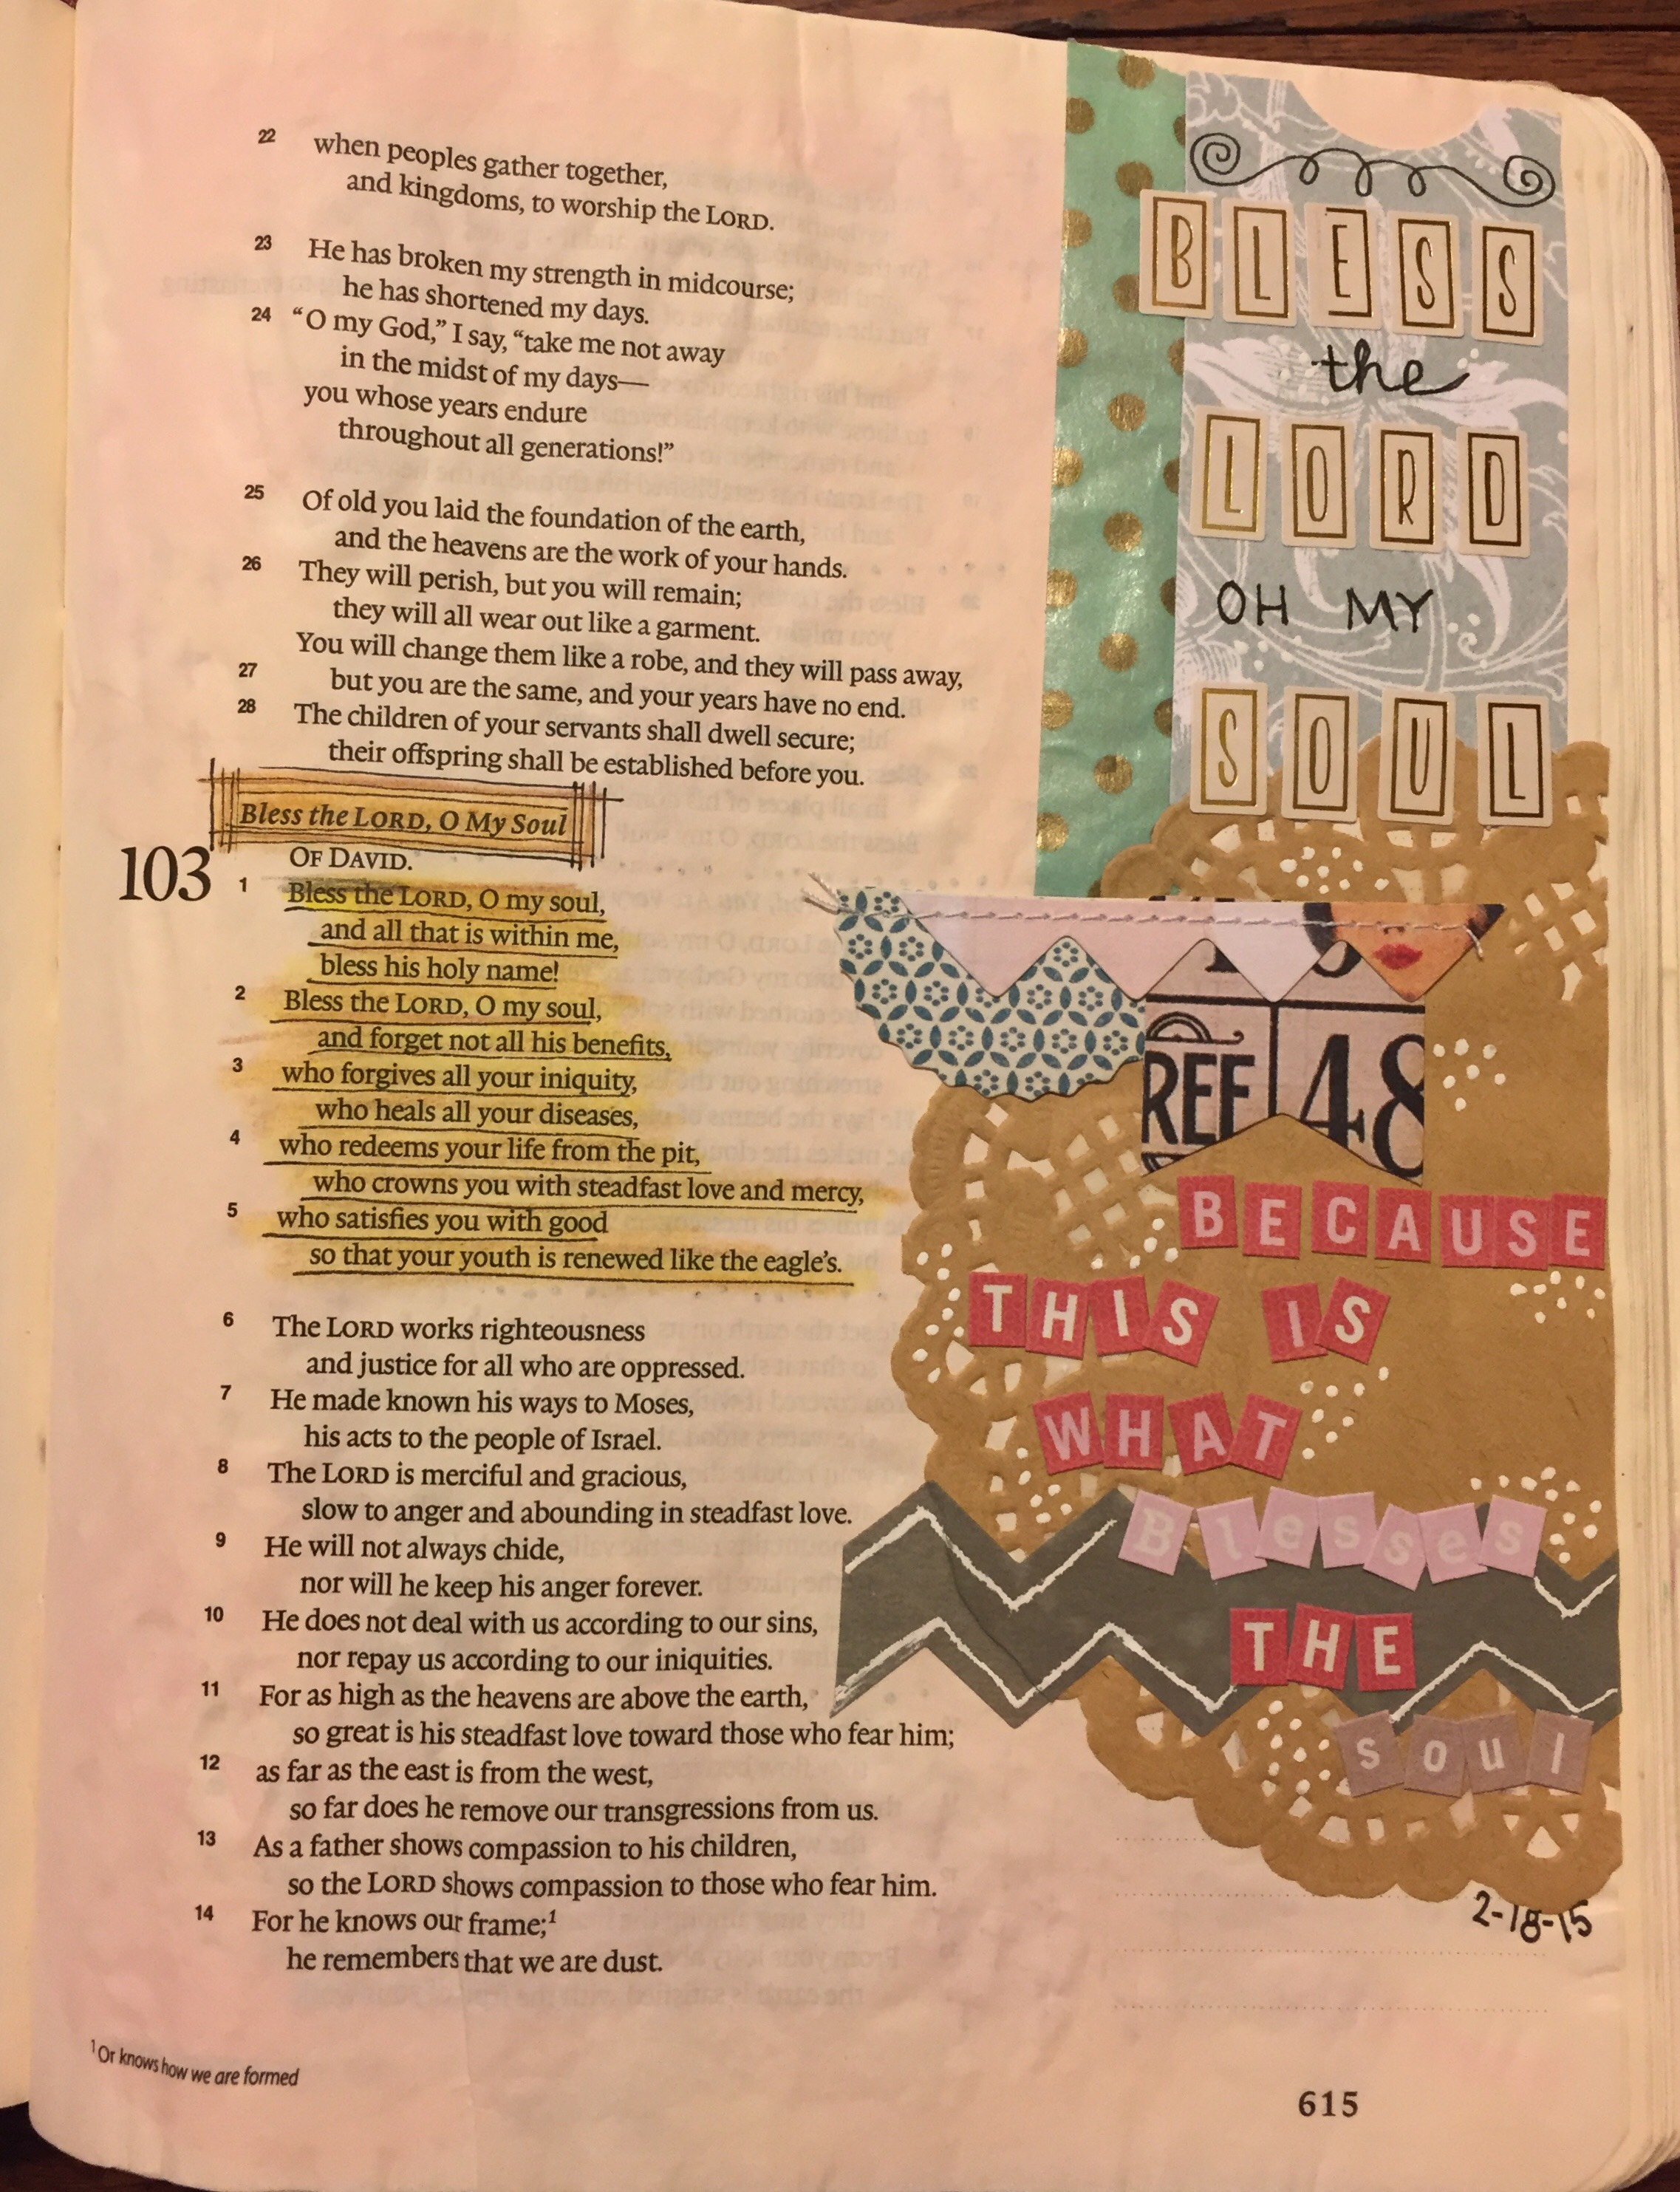 Jessica Meier Psalm 103-Bless the Lord, O My Soul   One of my favorite songs of all times is  One Thousand Reasons  by Matt Redman. This powerful song makes me want to sing at the top of my lungs and praise the Lord! I wanted to find a way to connect the song to a bible verse and artistically respond. I enjoyed layering different scrapbook papers, washing tape, and stickers to create a collage effect.